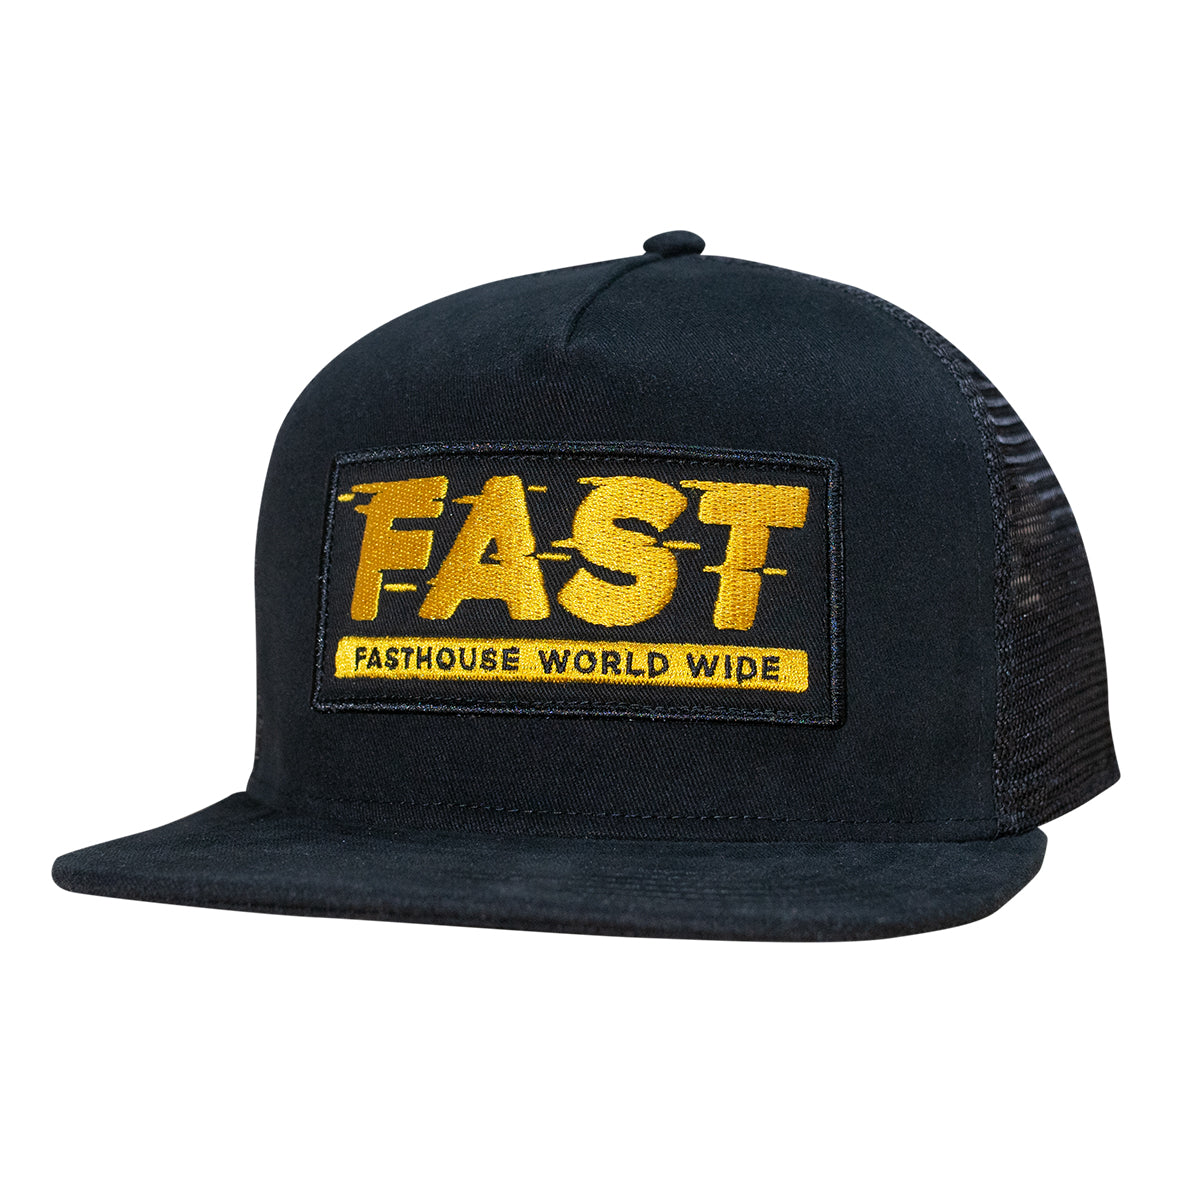 Fasthouse - Speedway Hat - Black